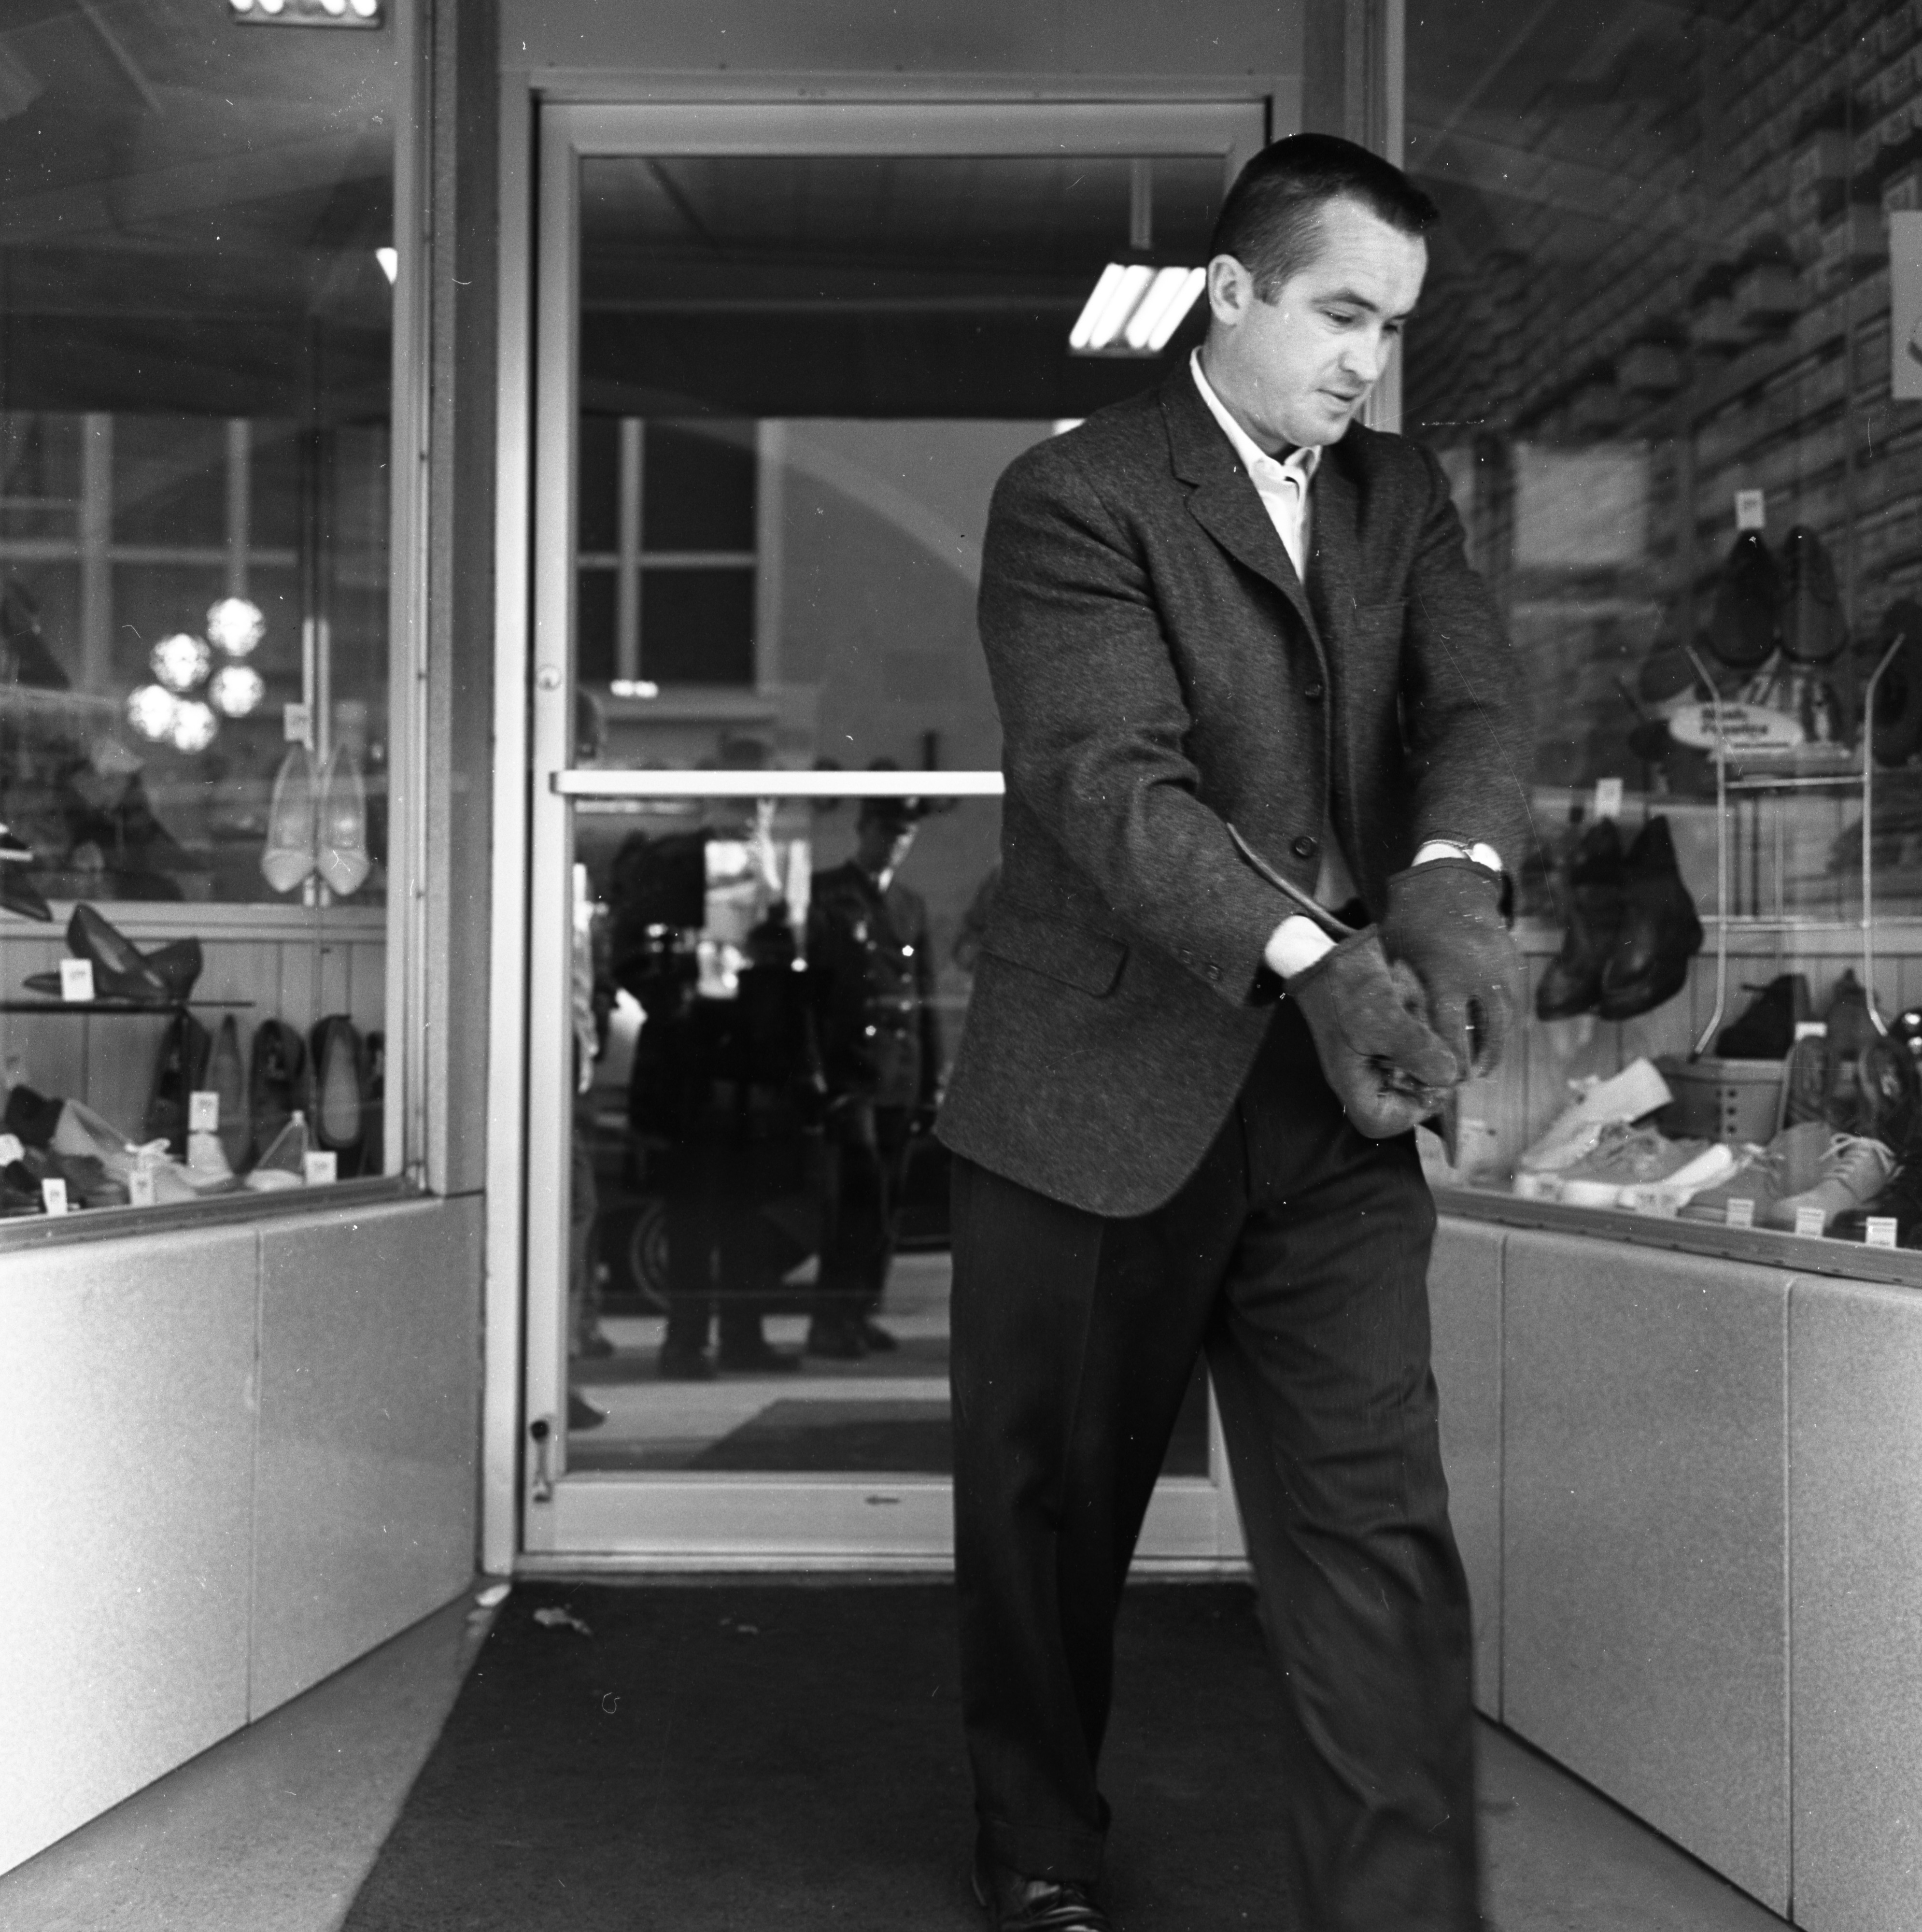 Jim Mynning Carries Muskrat Found at Doorway of Mast Shoe Store on Liberty St., March 1964 image